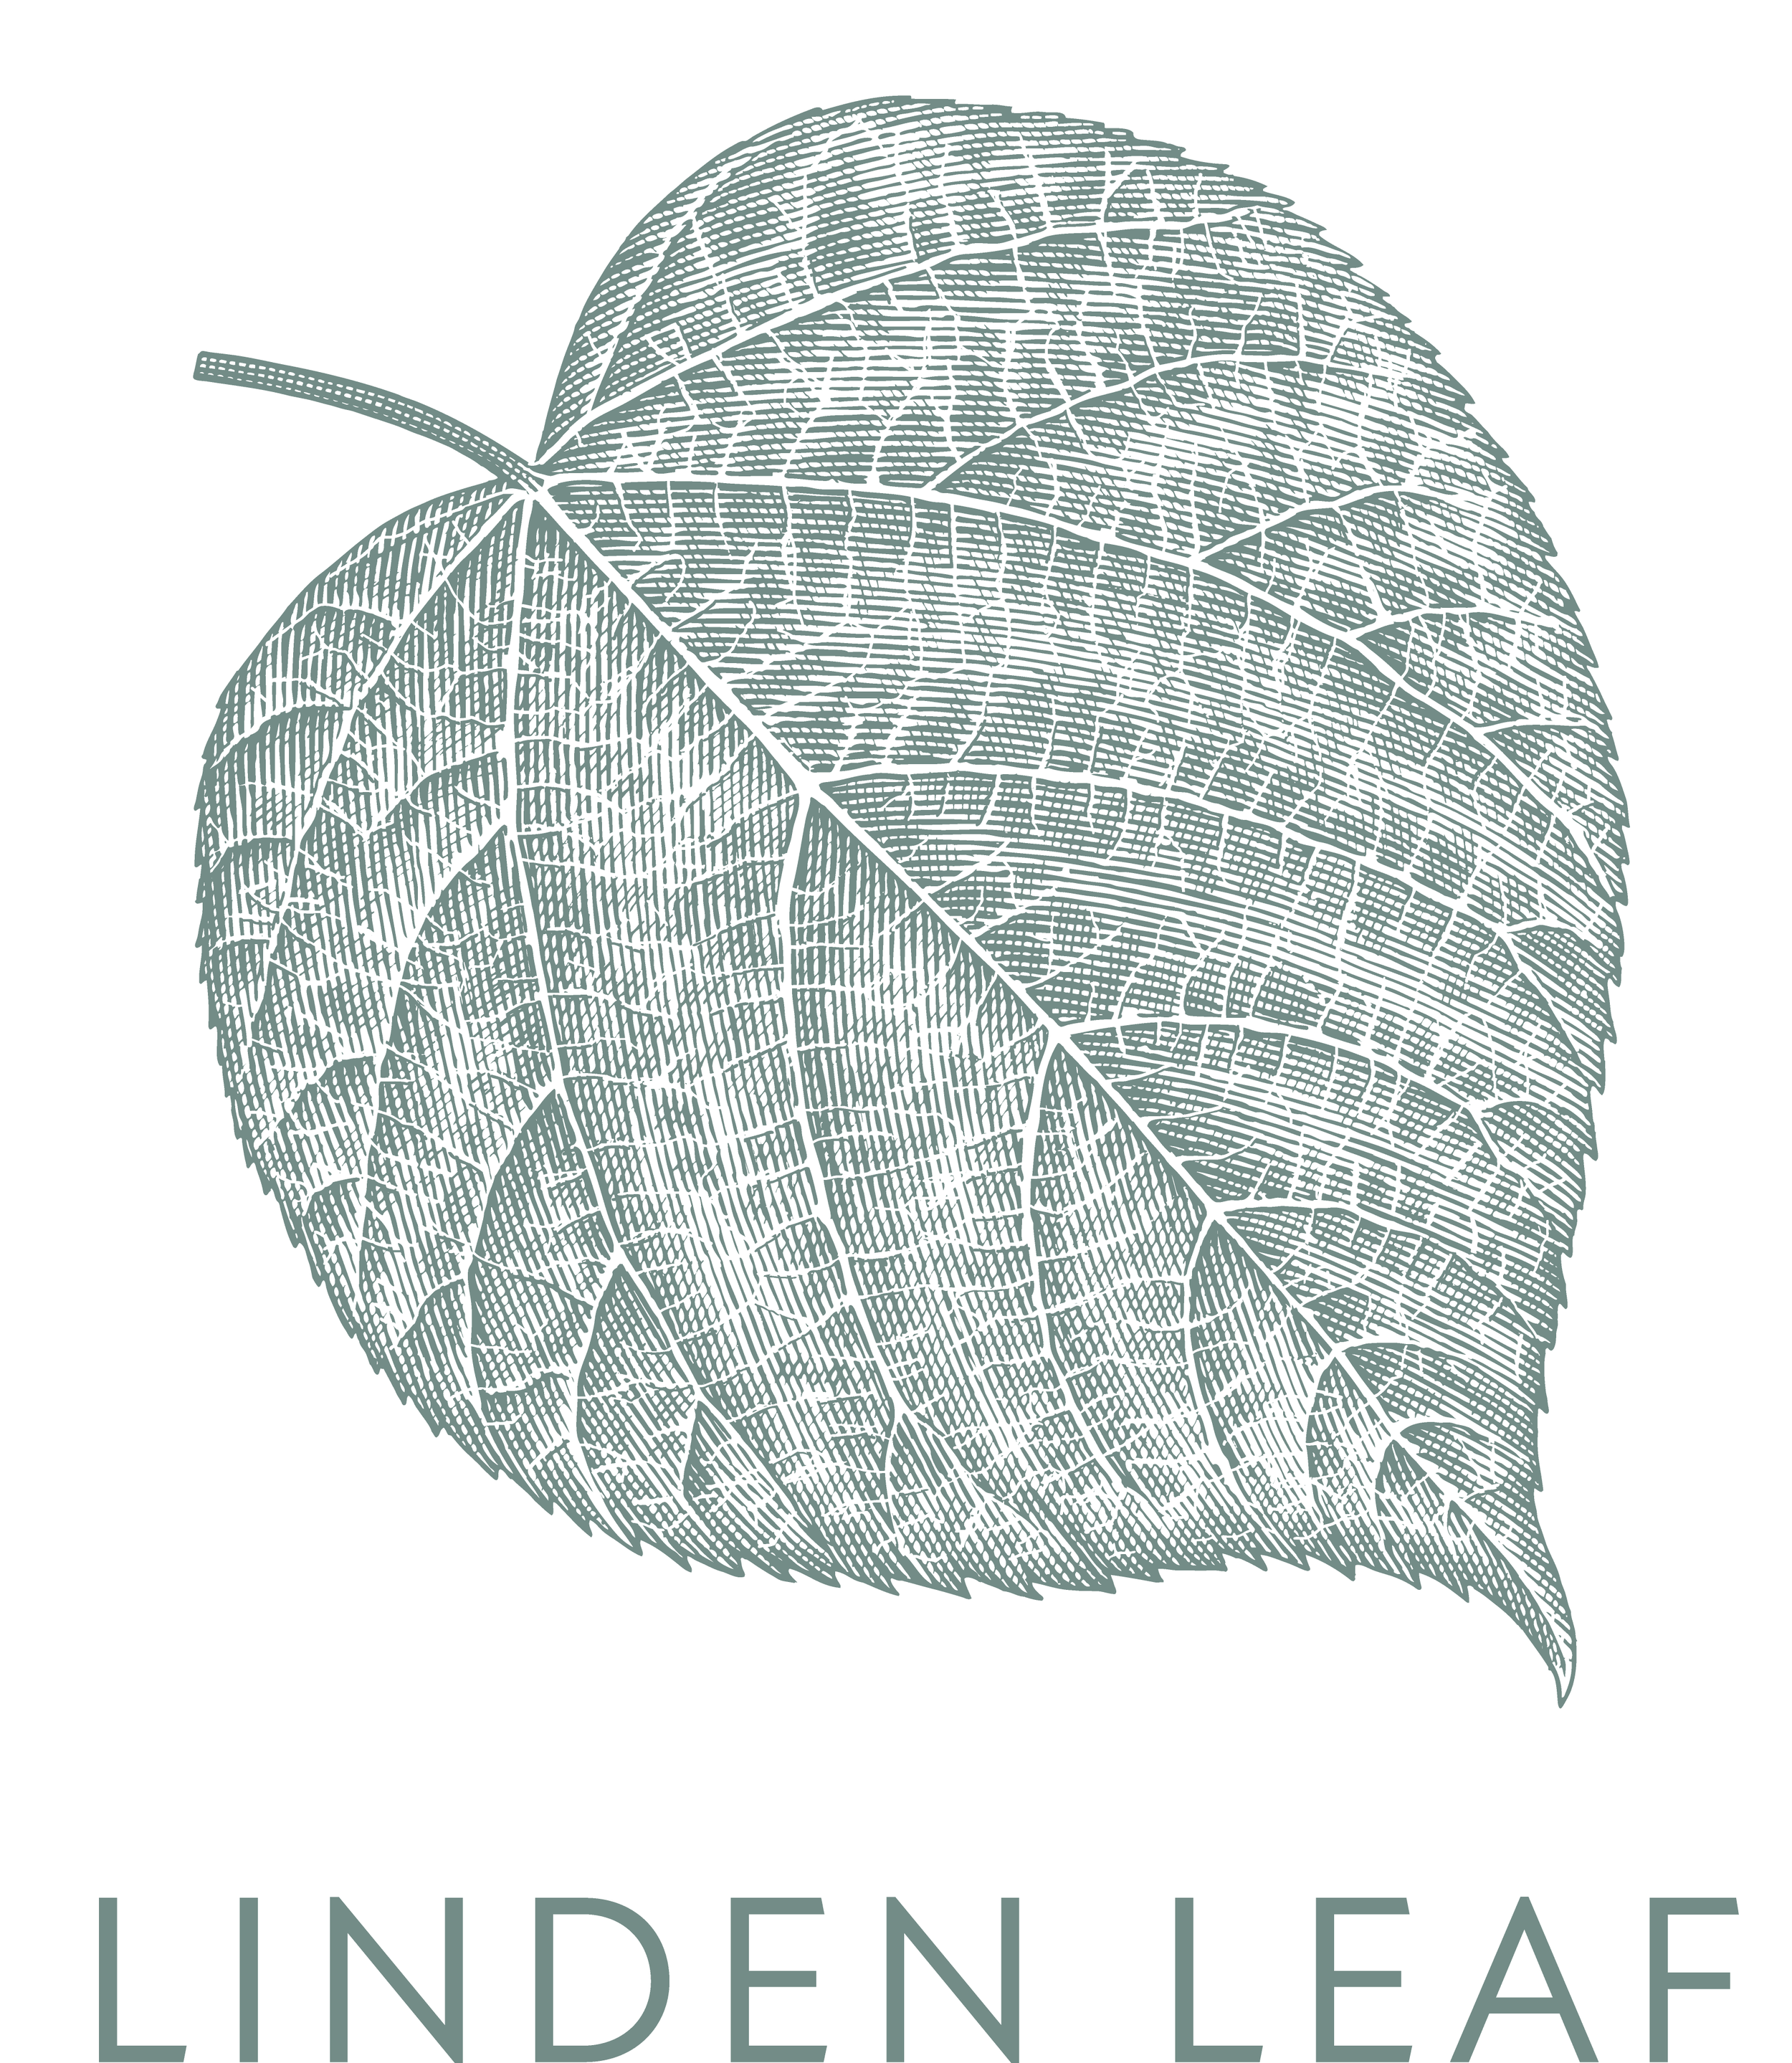 Linden Leaf art - detailed version with text 5555.png